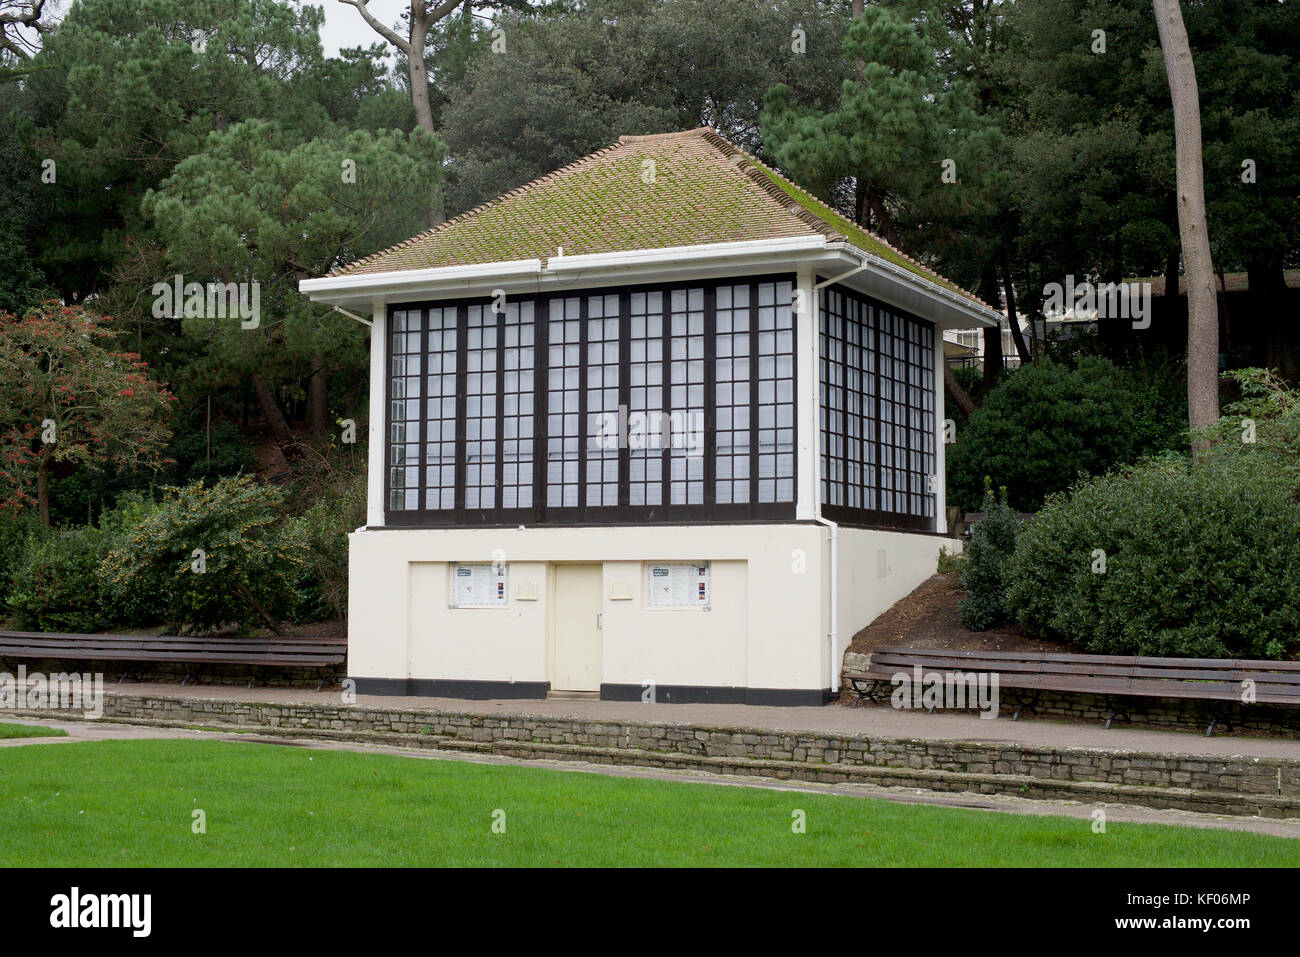 The bandstand in Bournemouth Gardens - Stock Image